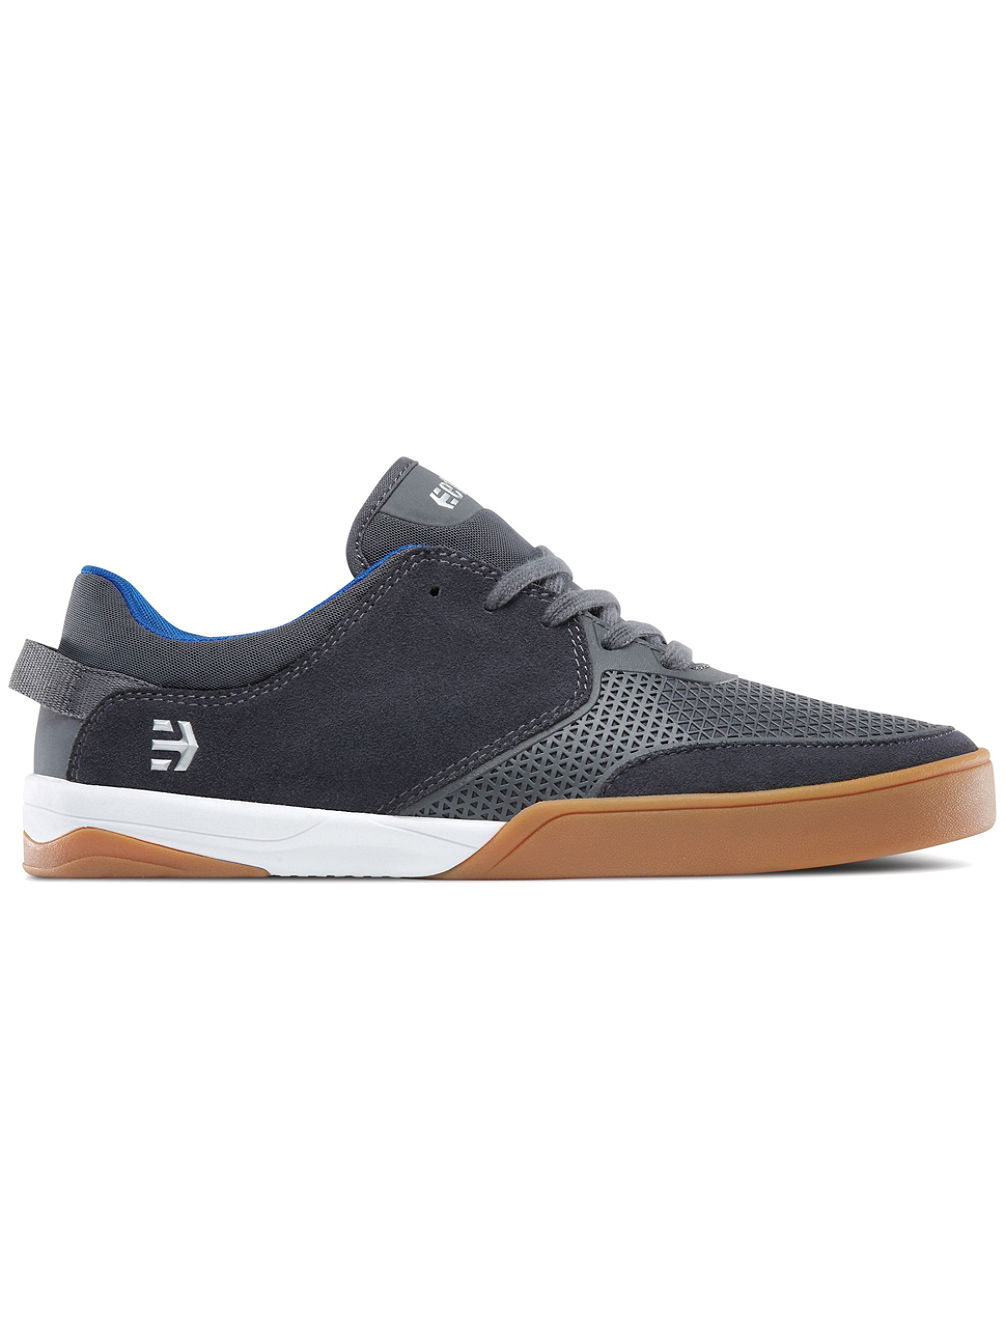 Helix Skate Shoes